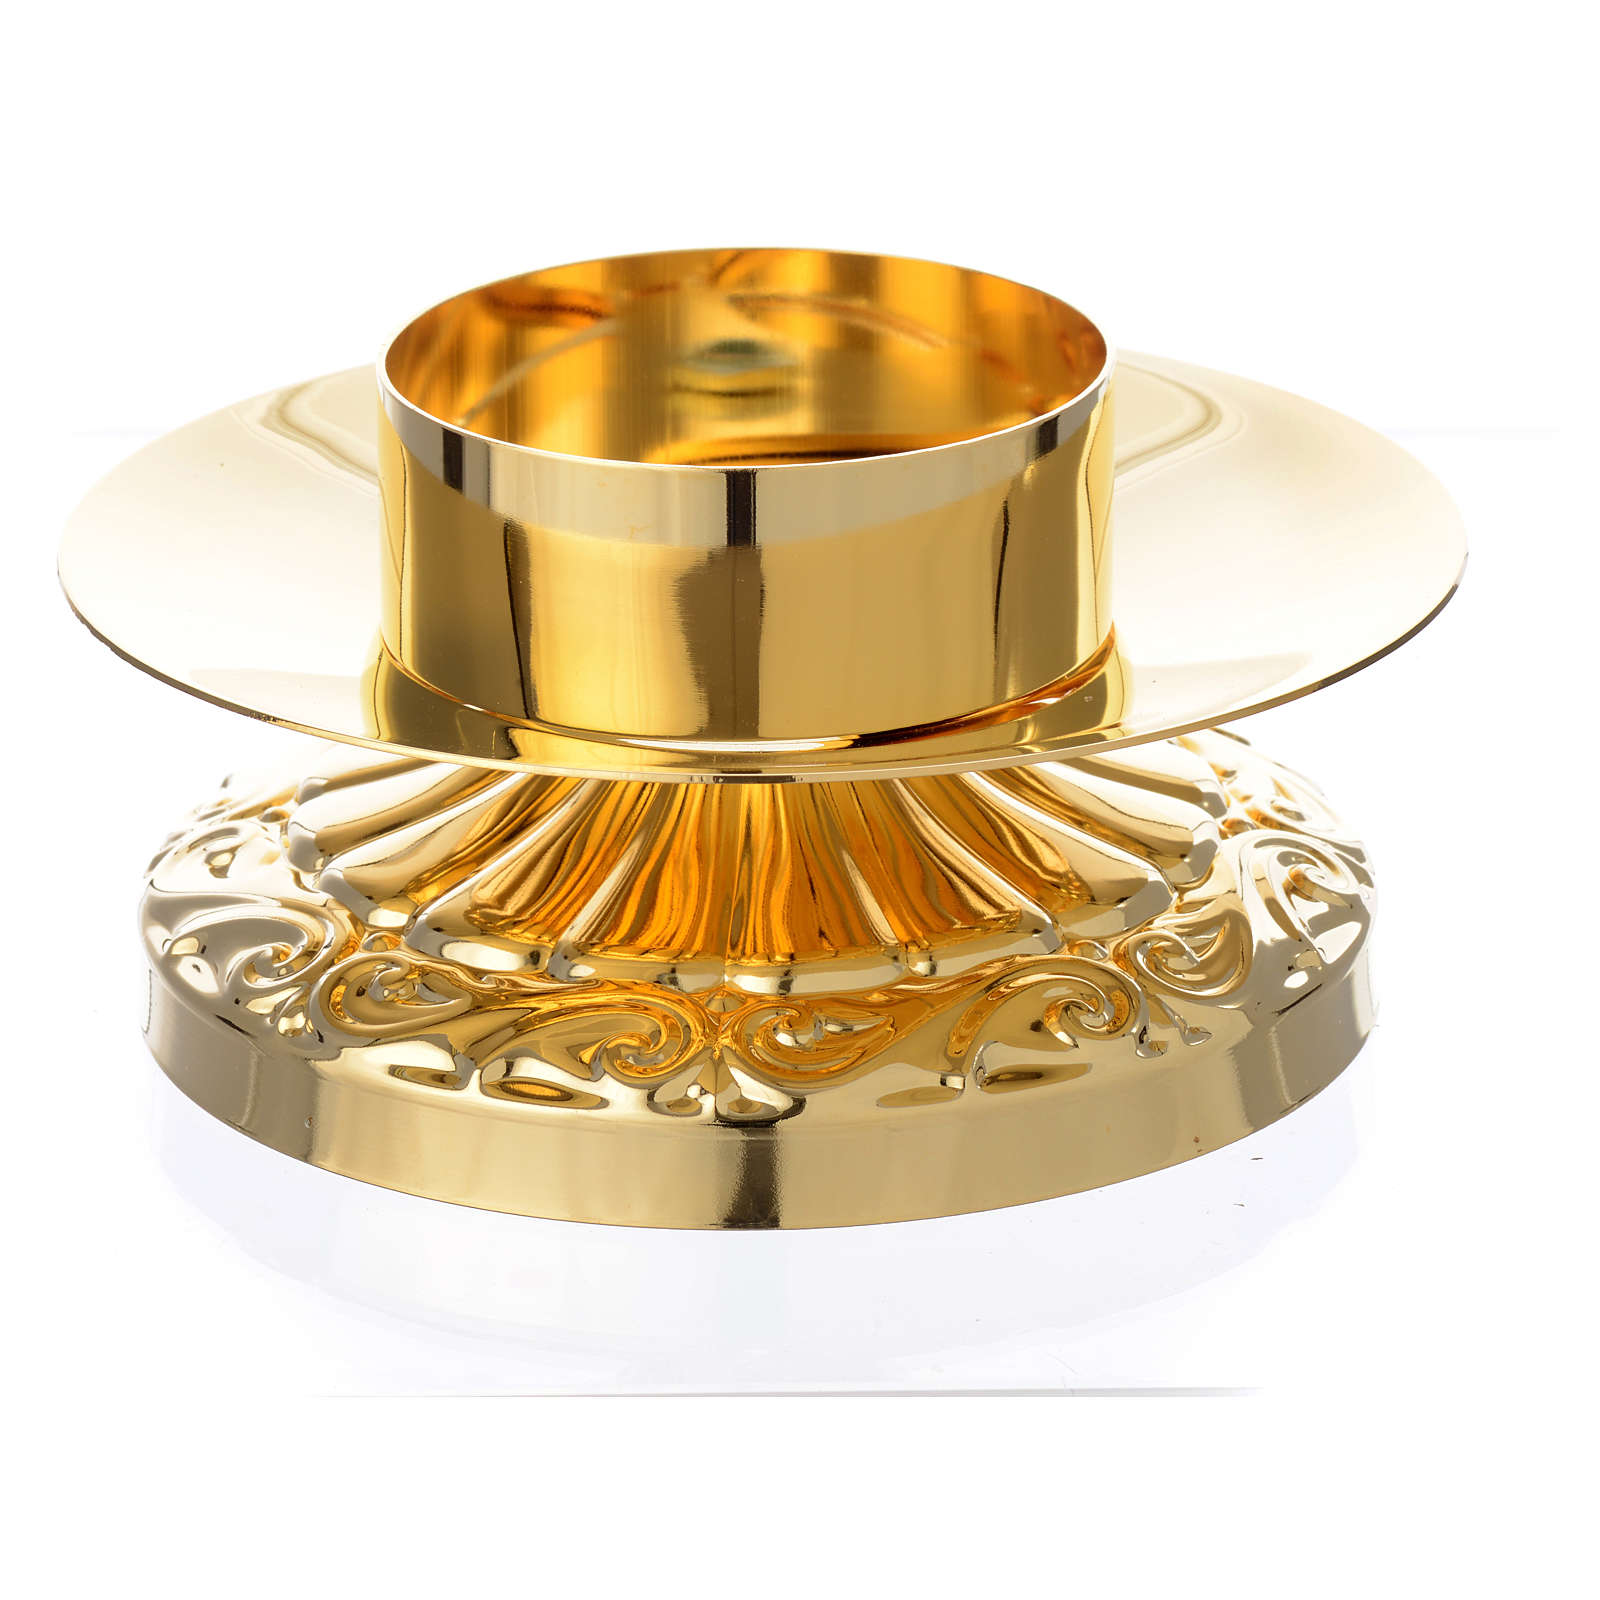 Empire style candle holder in golden brass 4